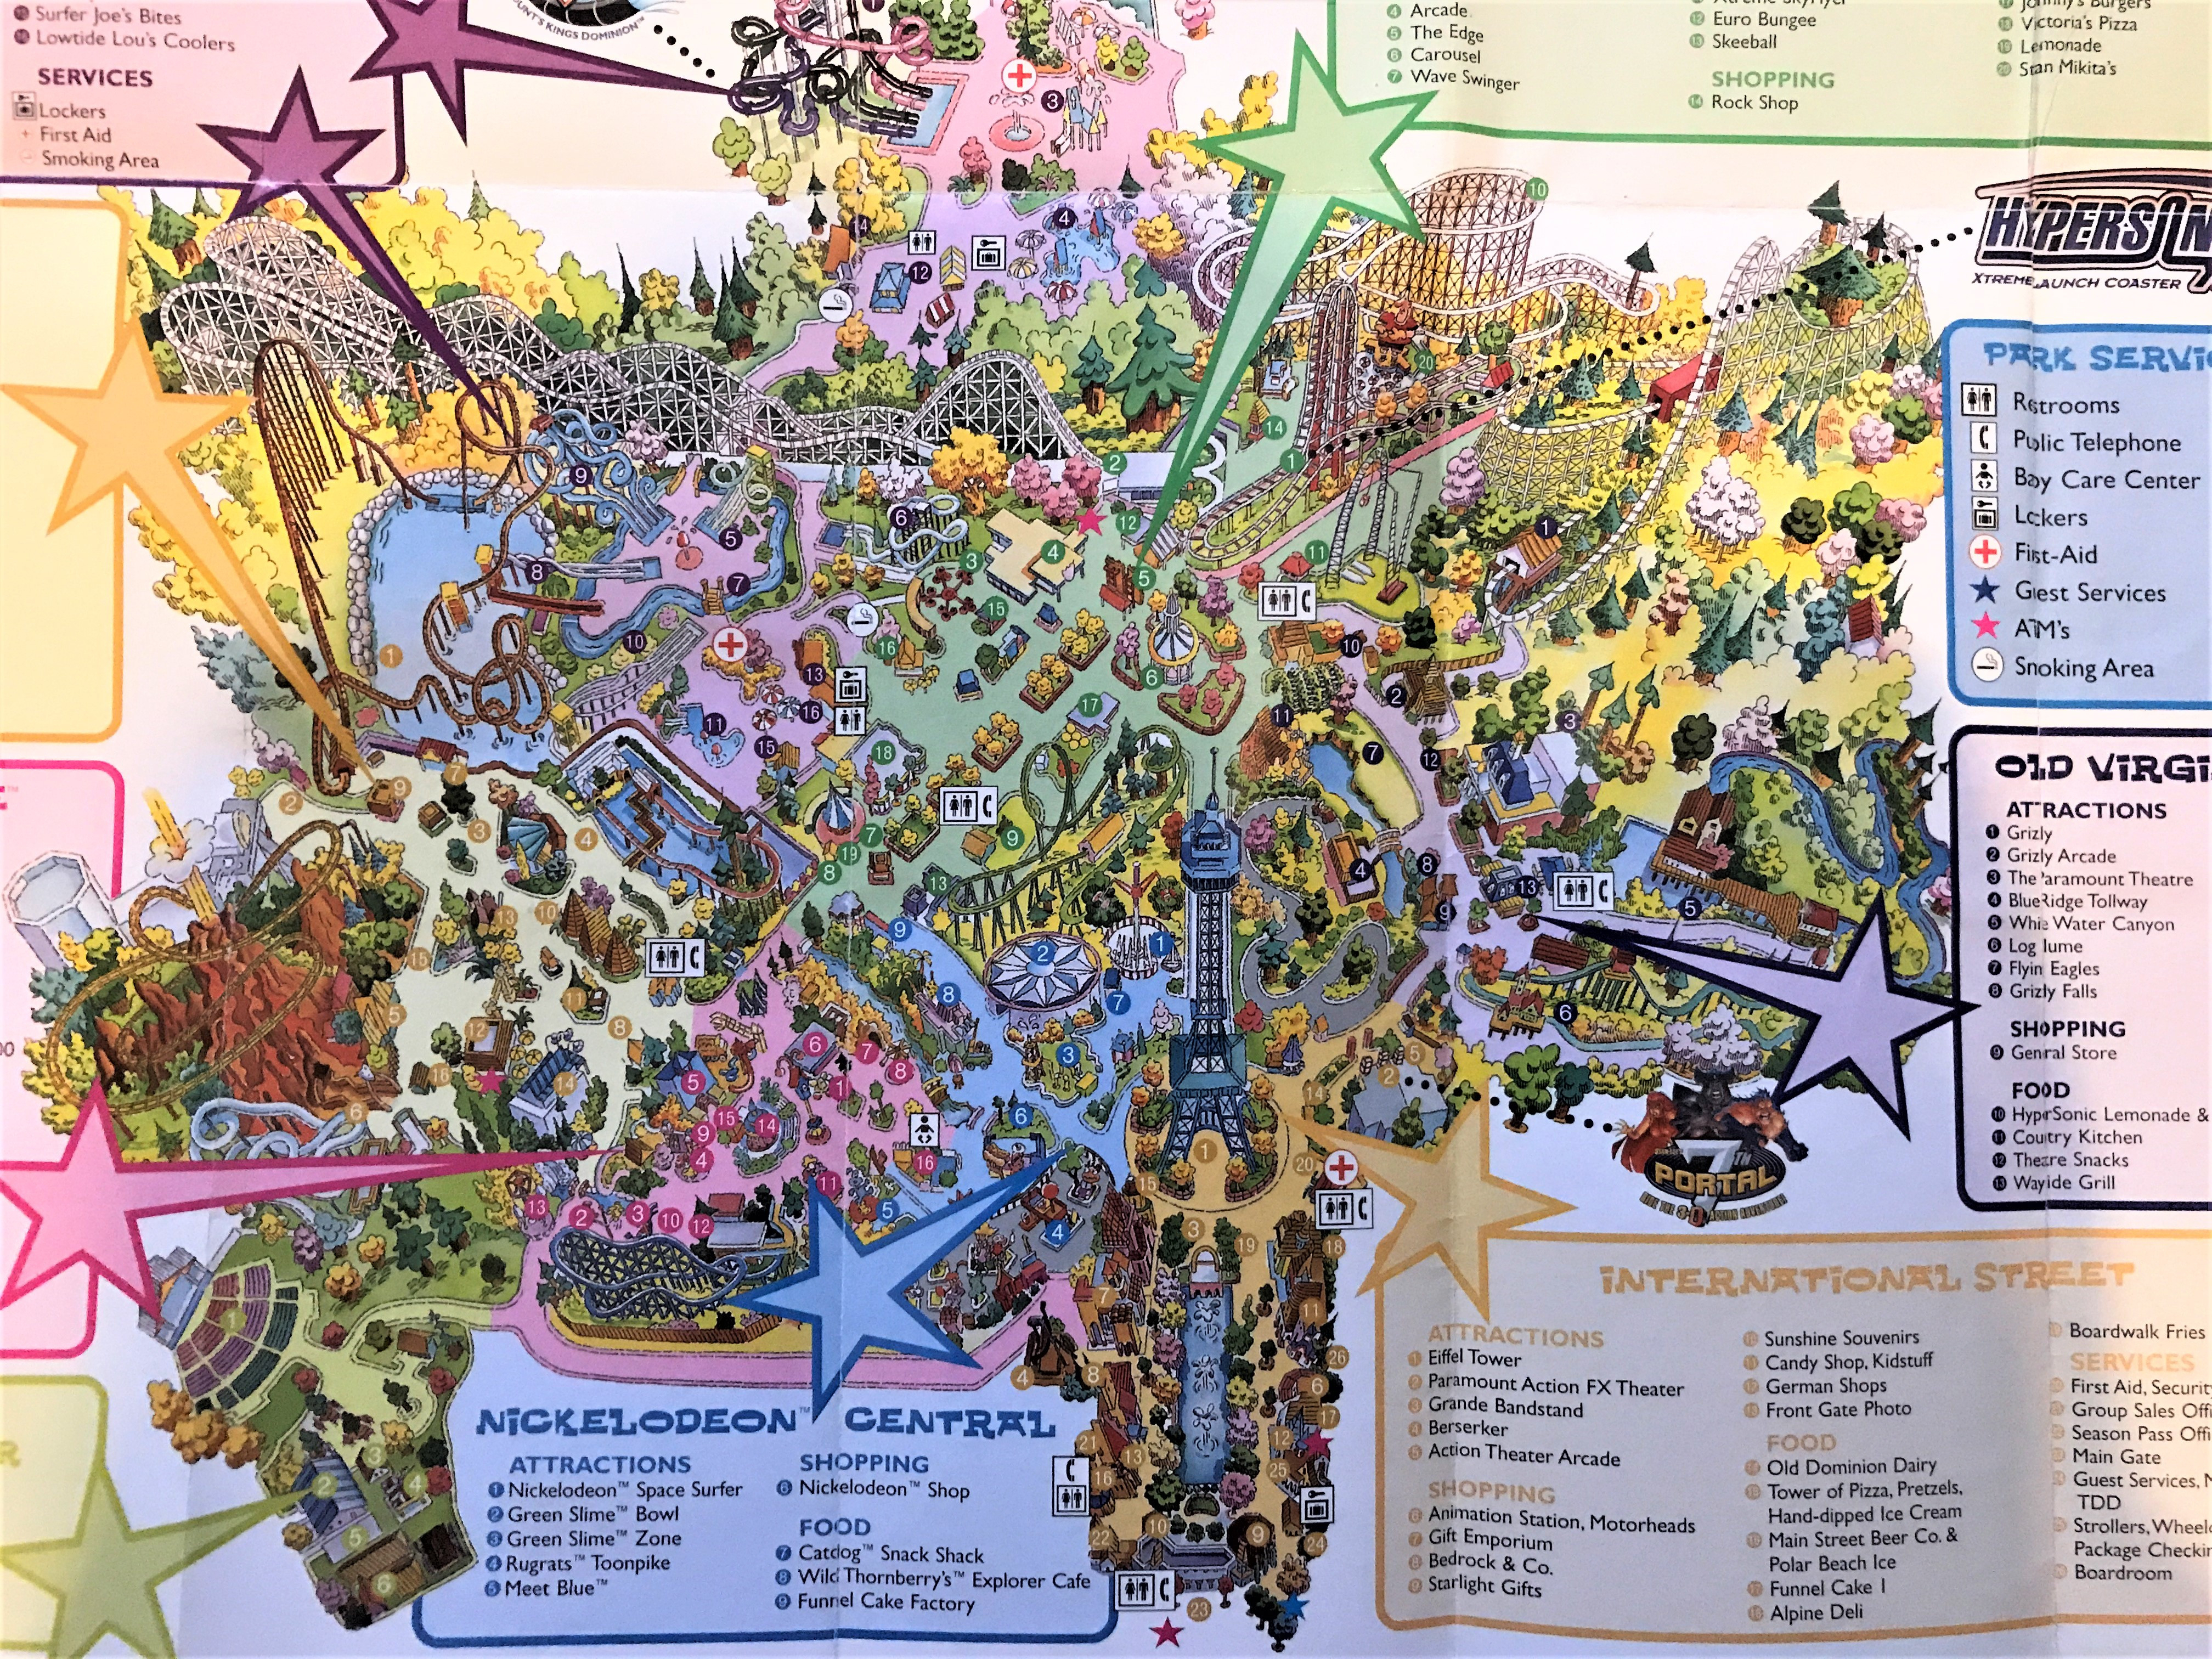 California Great America Map Reference Kings Dominion Historical - California's Great America Map 2018